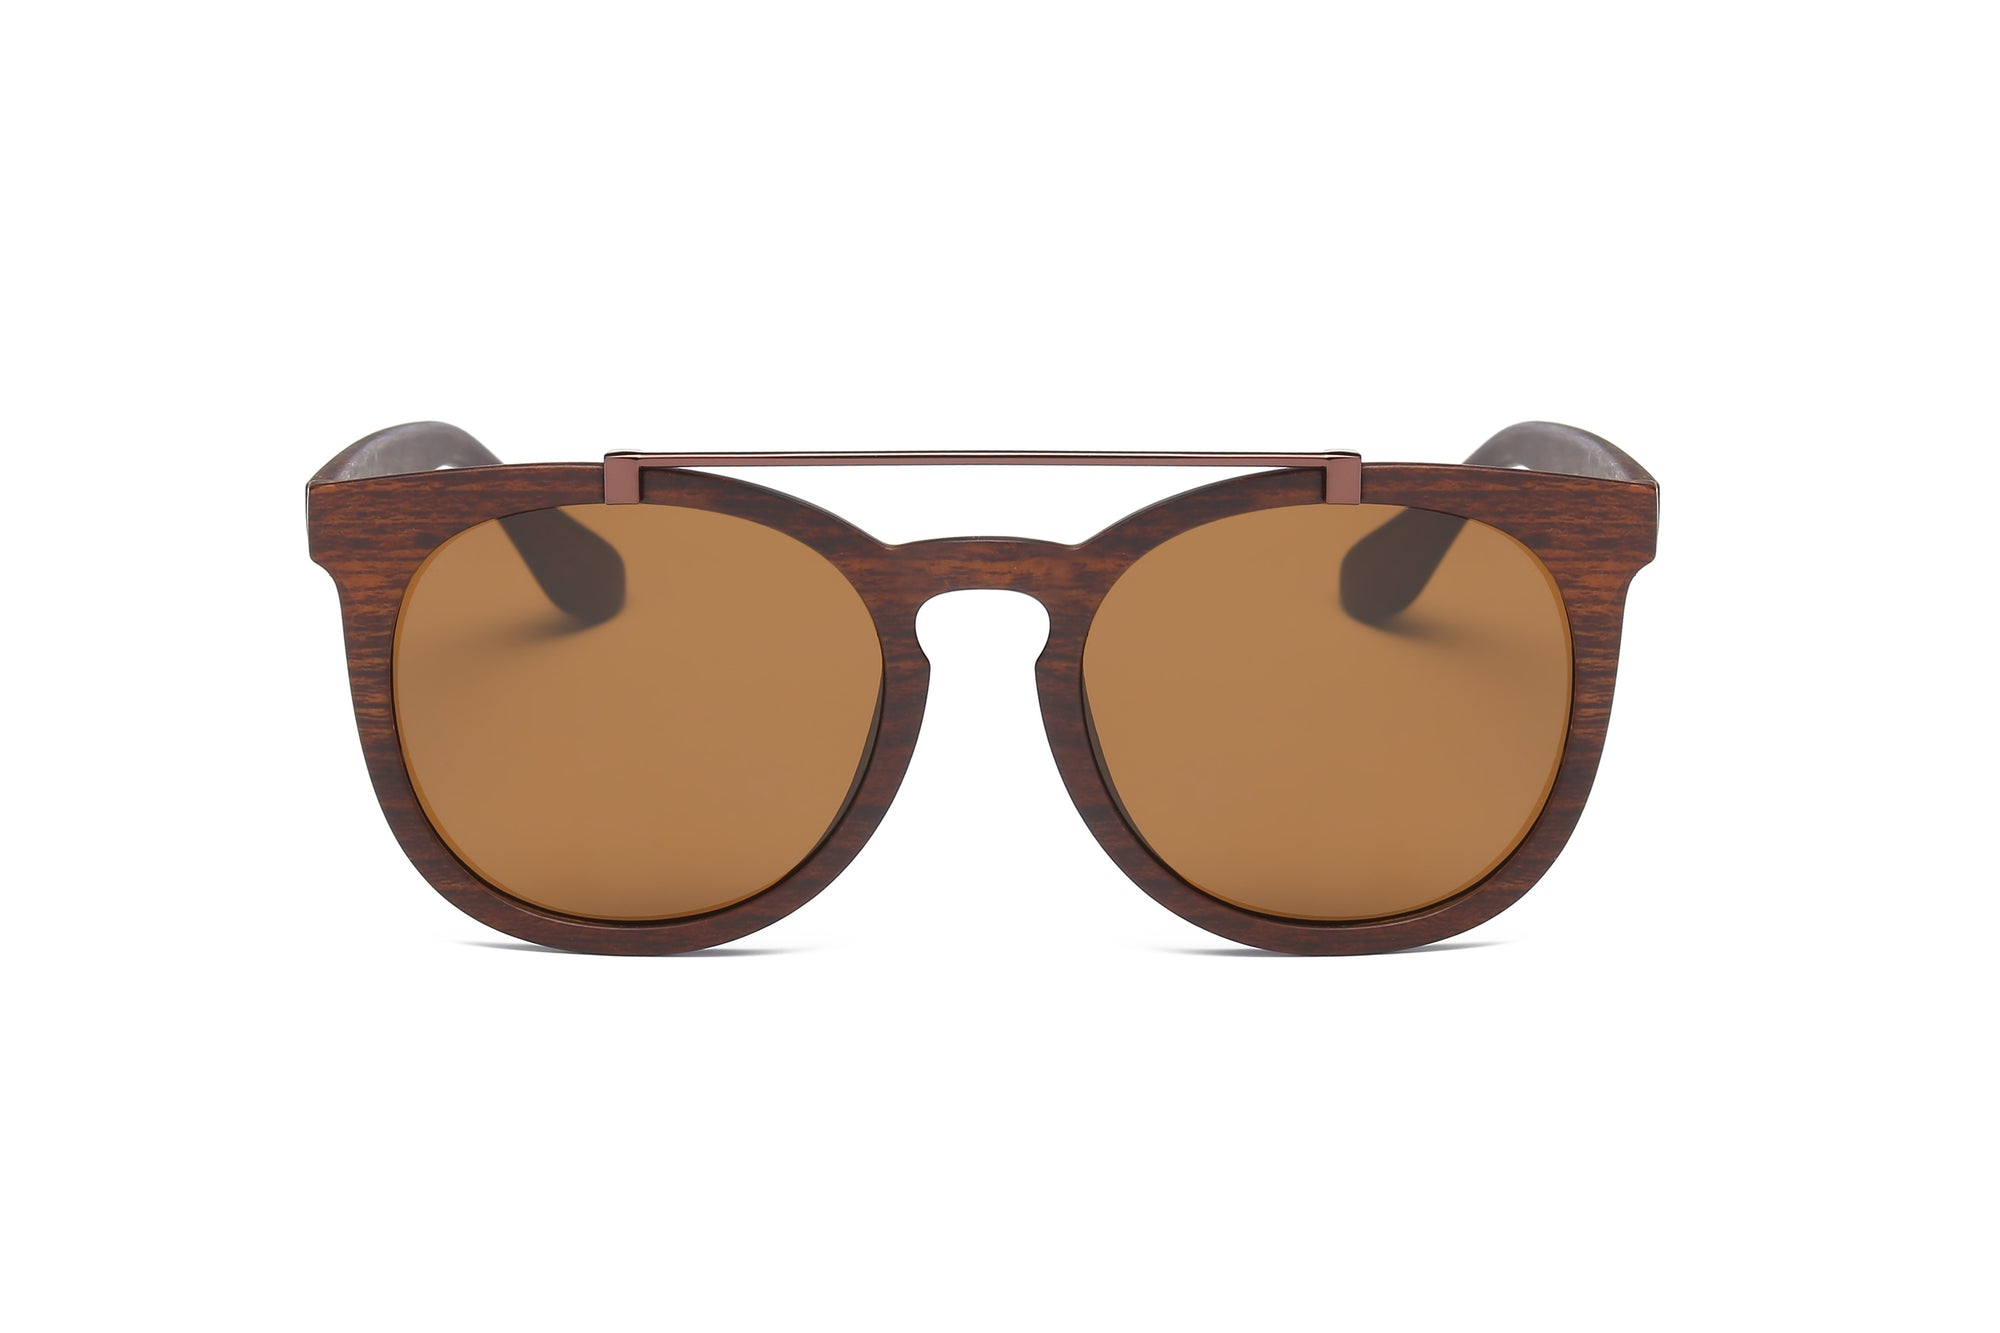 S1008 - Trendy Top Bar Keyhole Bridge Round Sunglasses - Wholesale Sunglasses and glasses